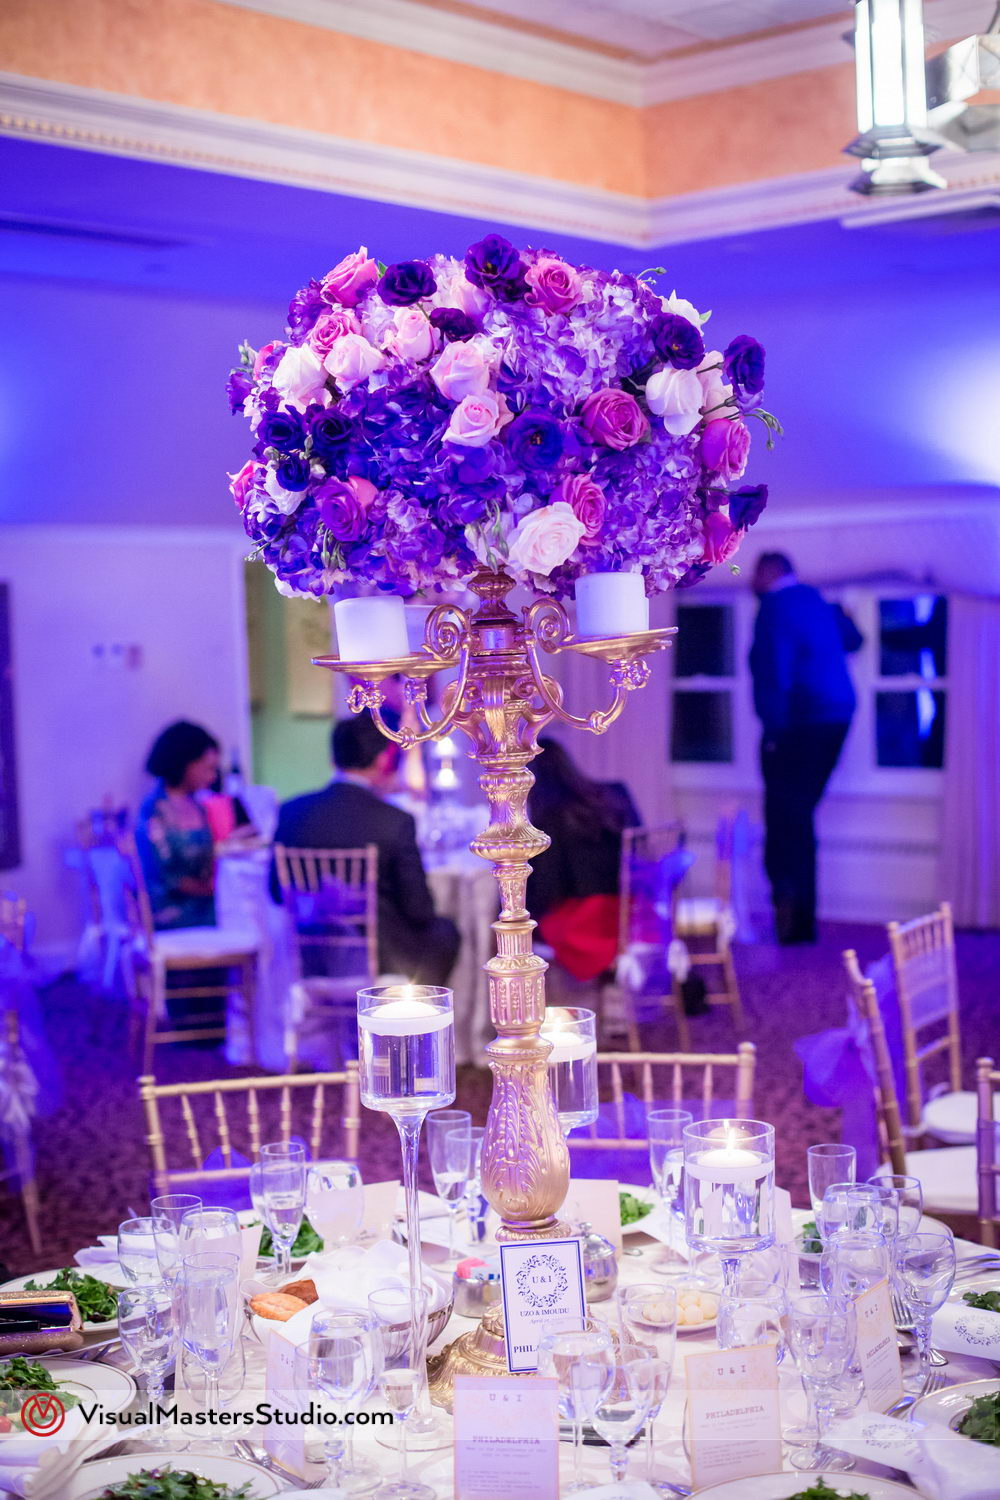 Wedding Table Flower Arrangements at Skylands Manor by Visual Masters